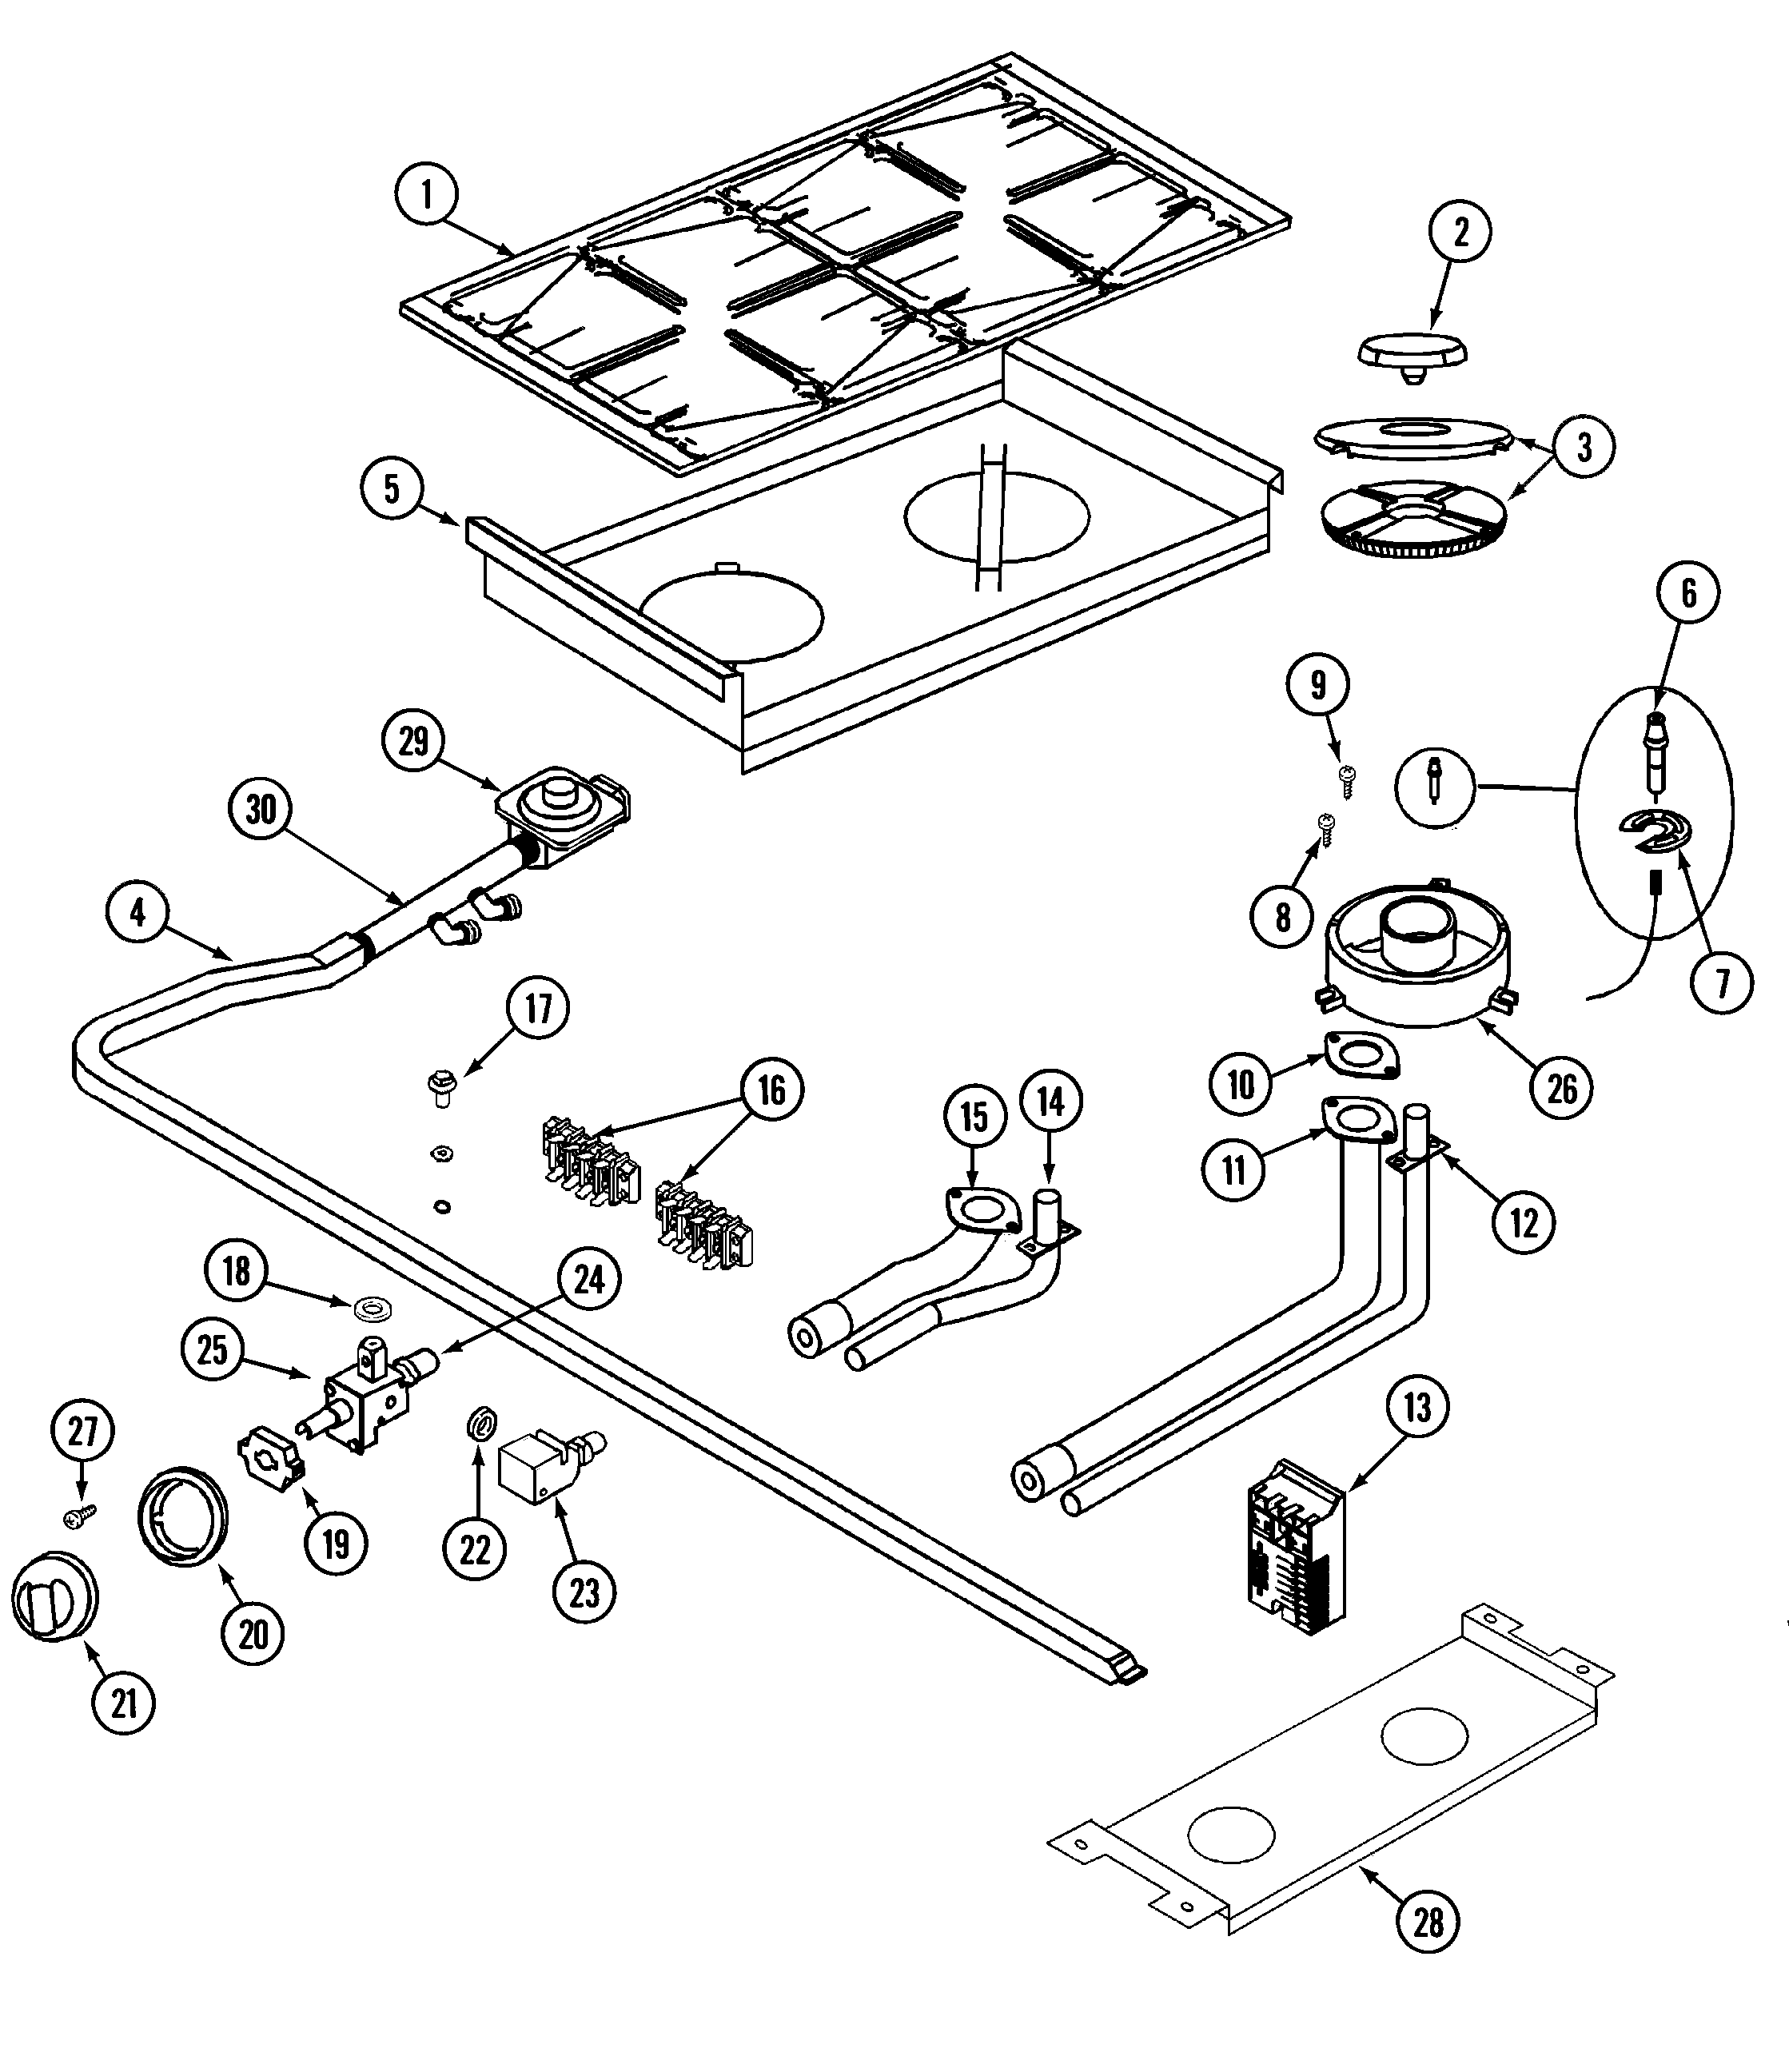 TOP ASSEMBLY & CONTROLS Diagram & Parts List for Model